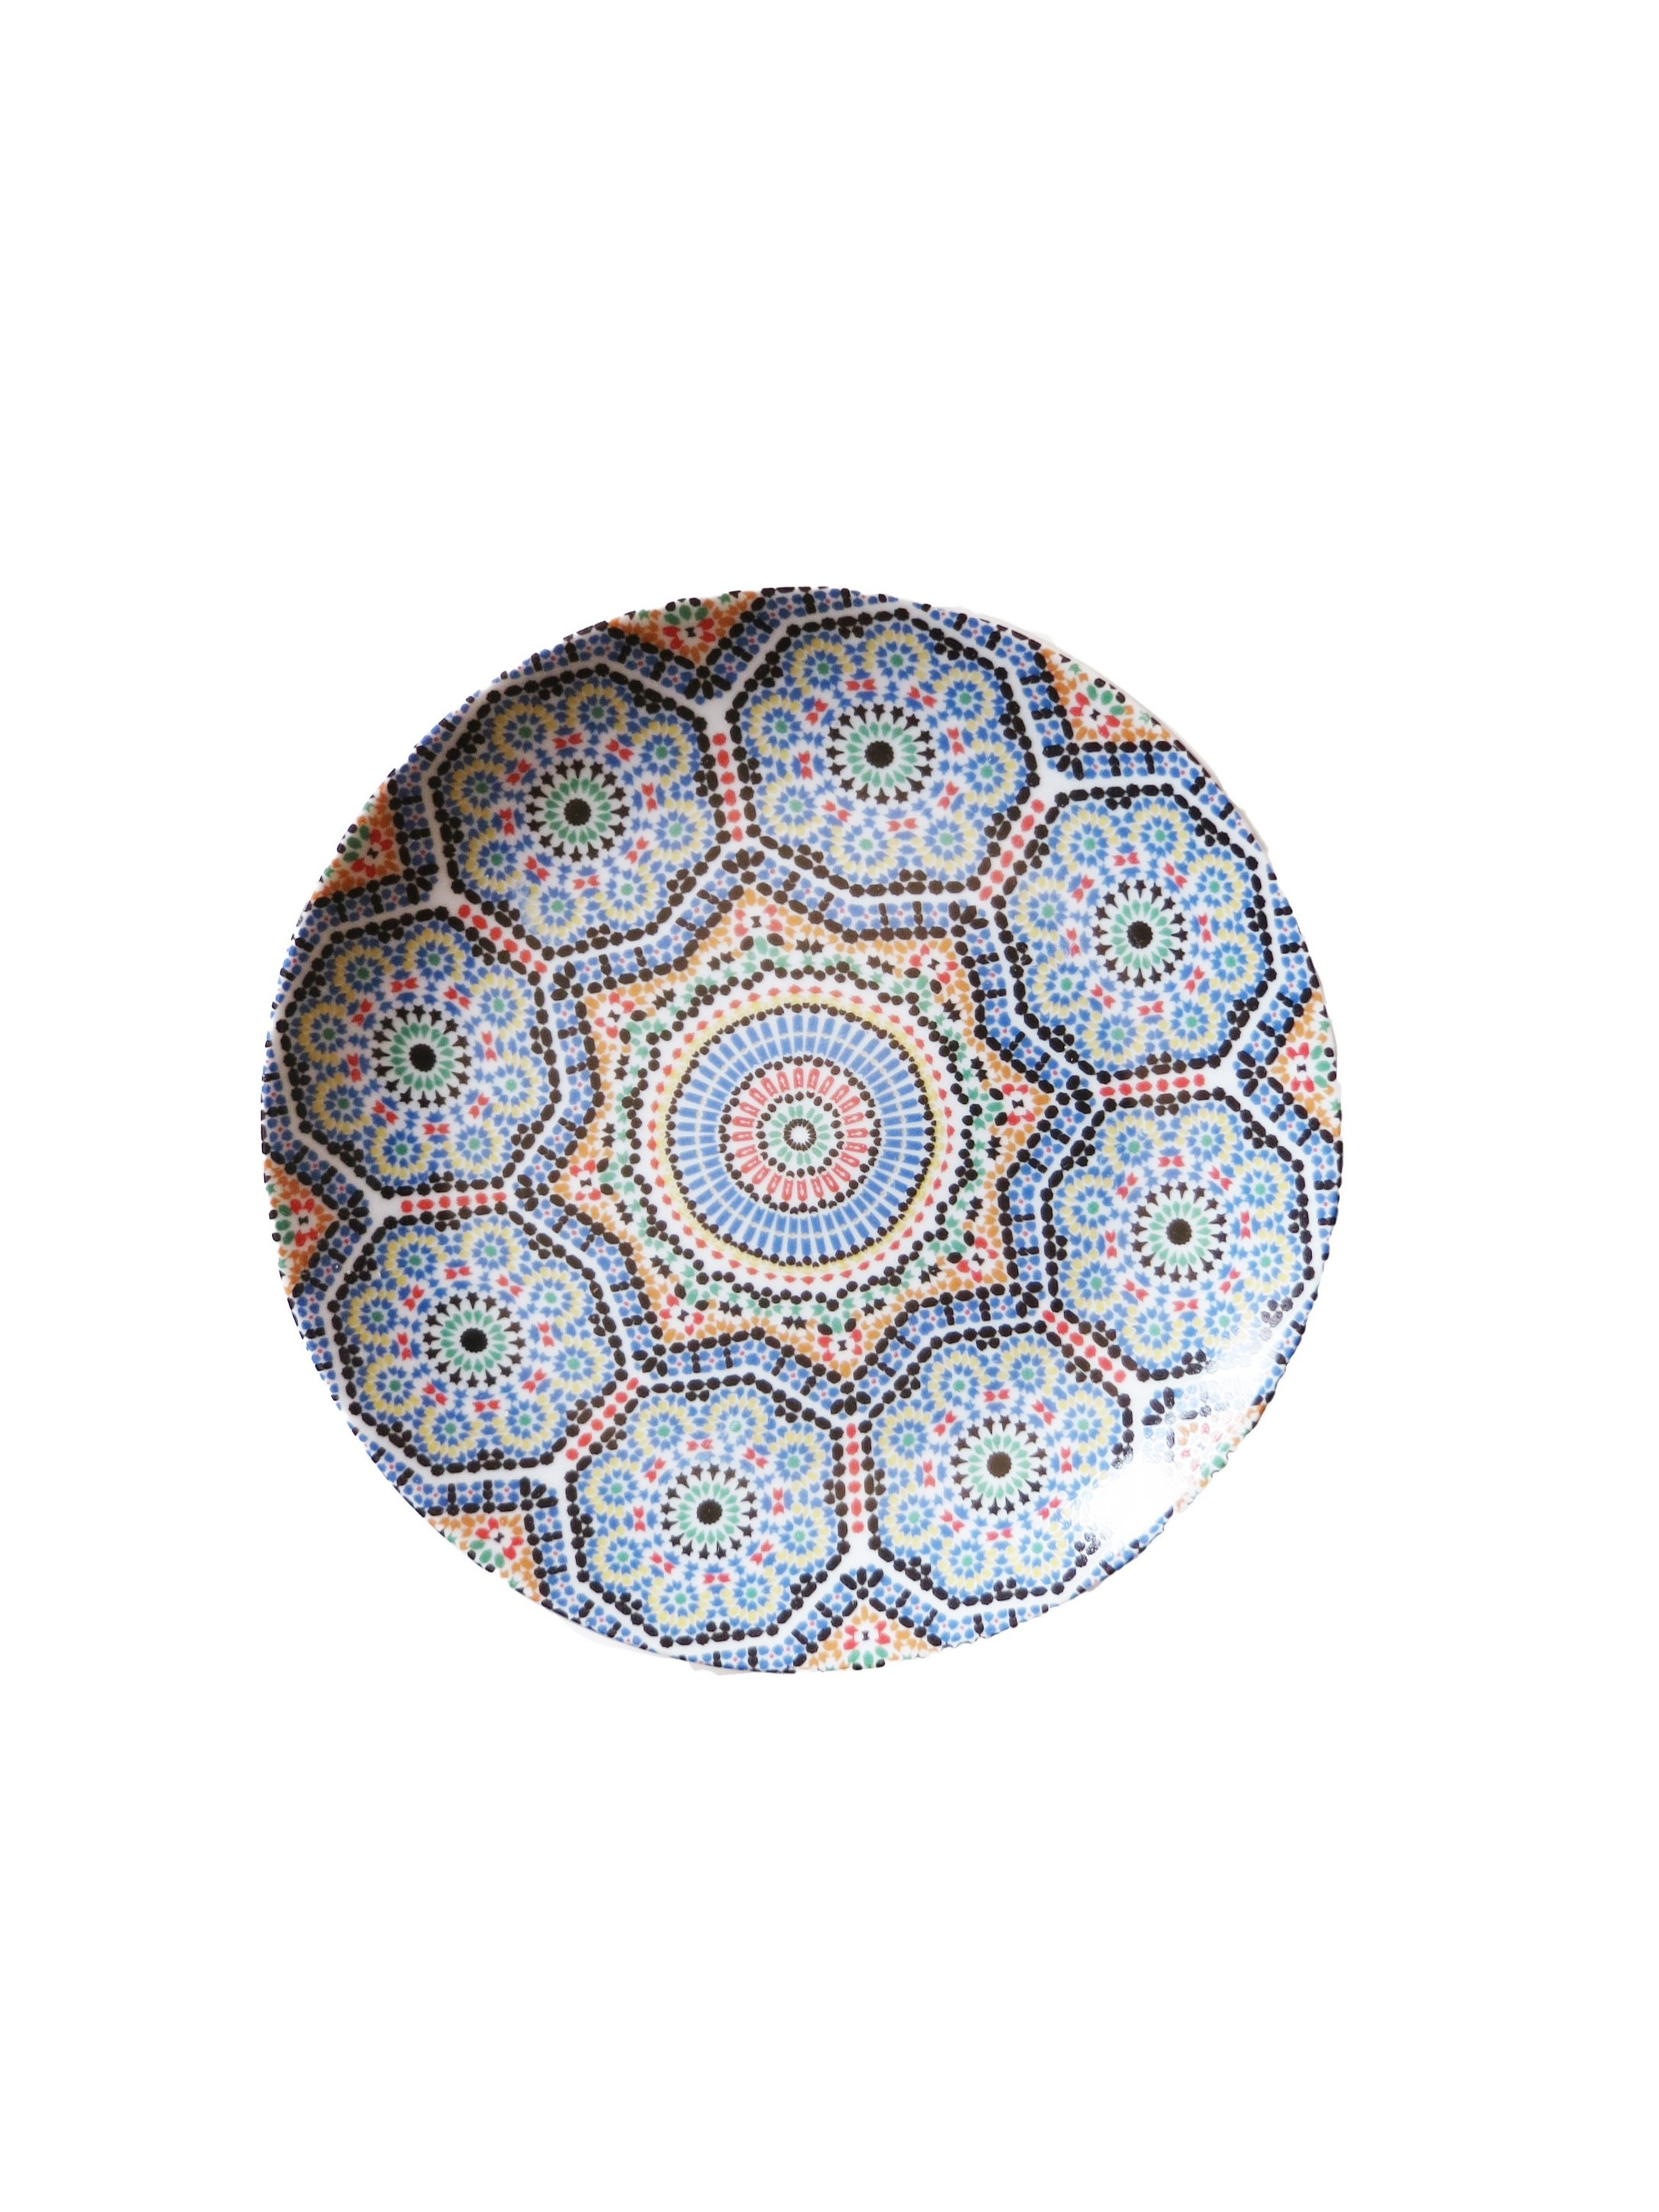 Small Moroccan Porcelain Plate $16.00